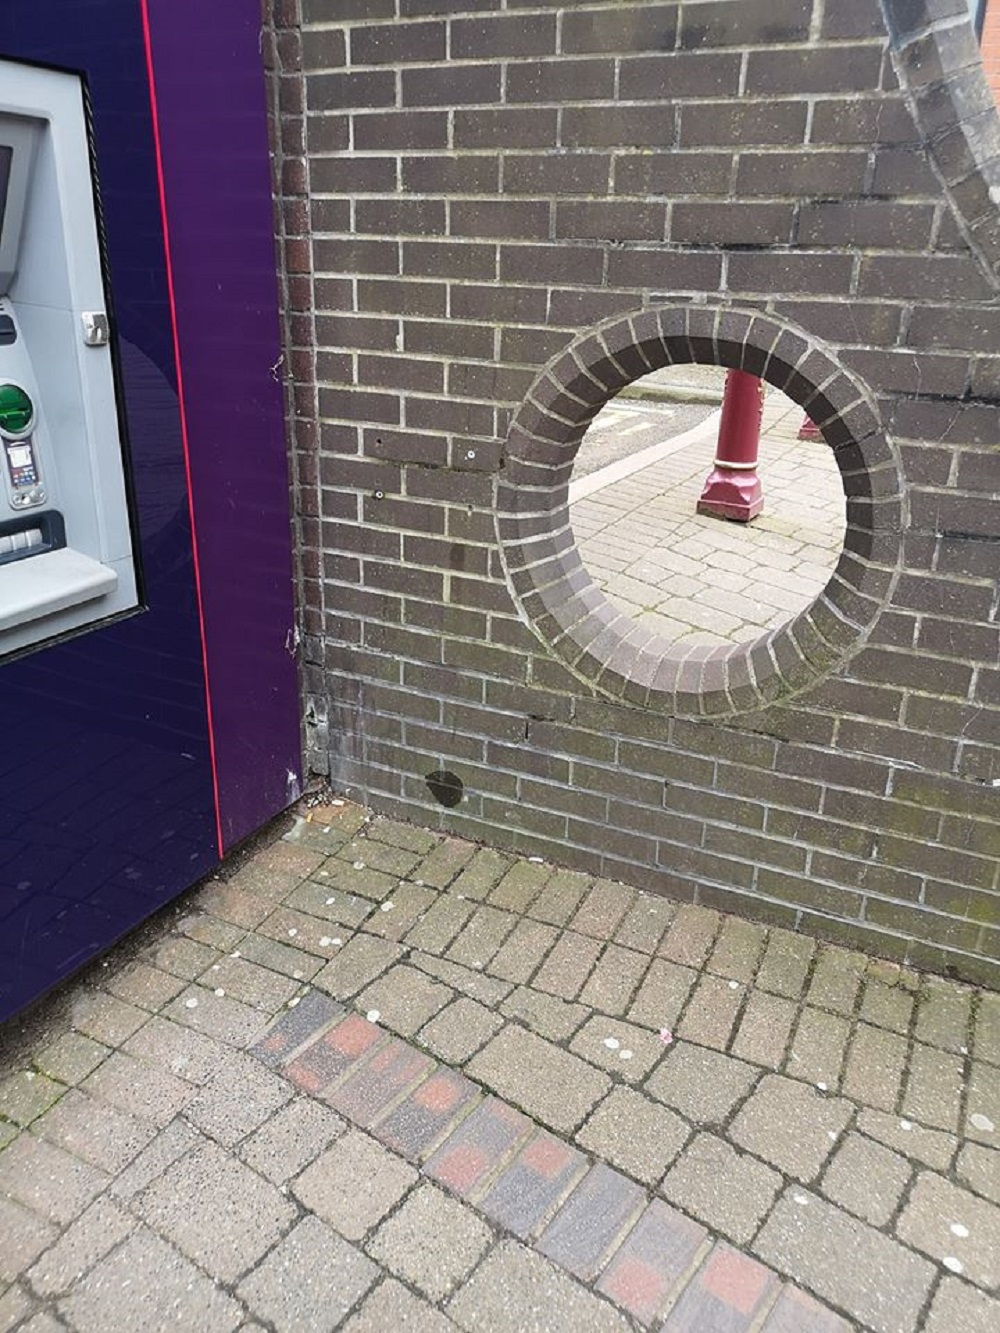 The NatWest hole in Ilkeston